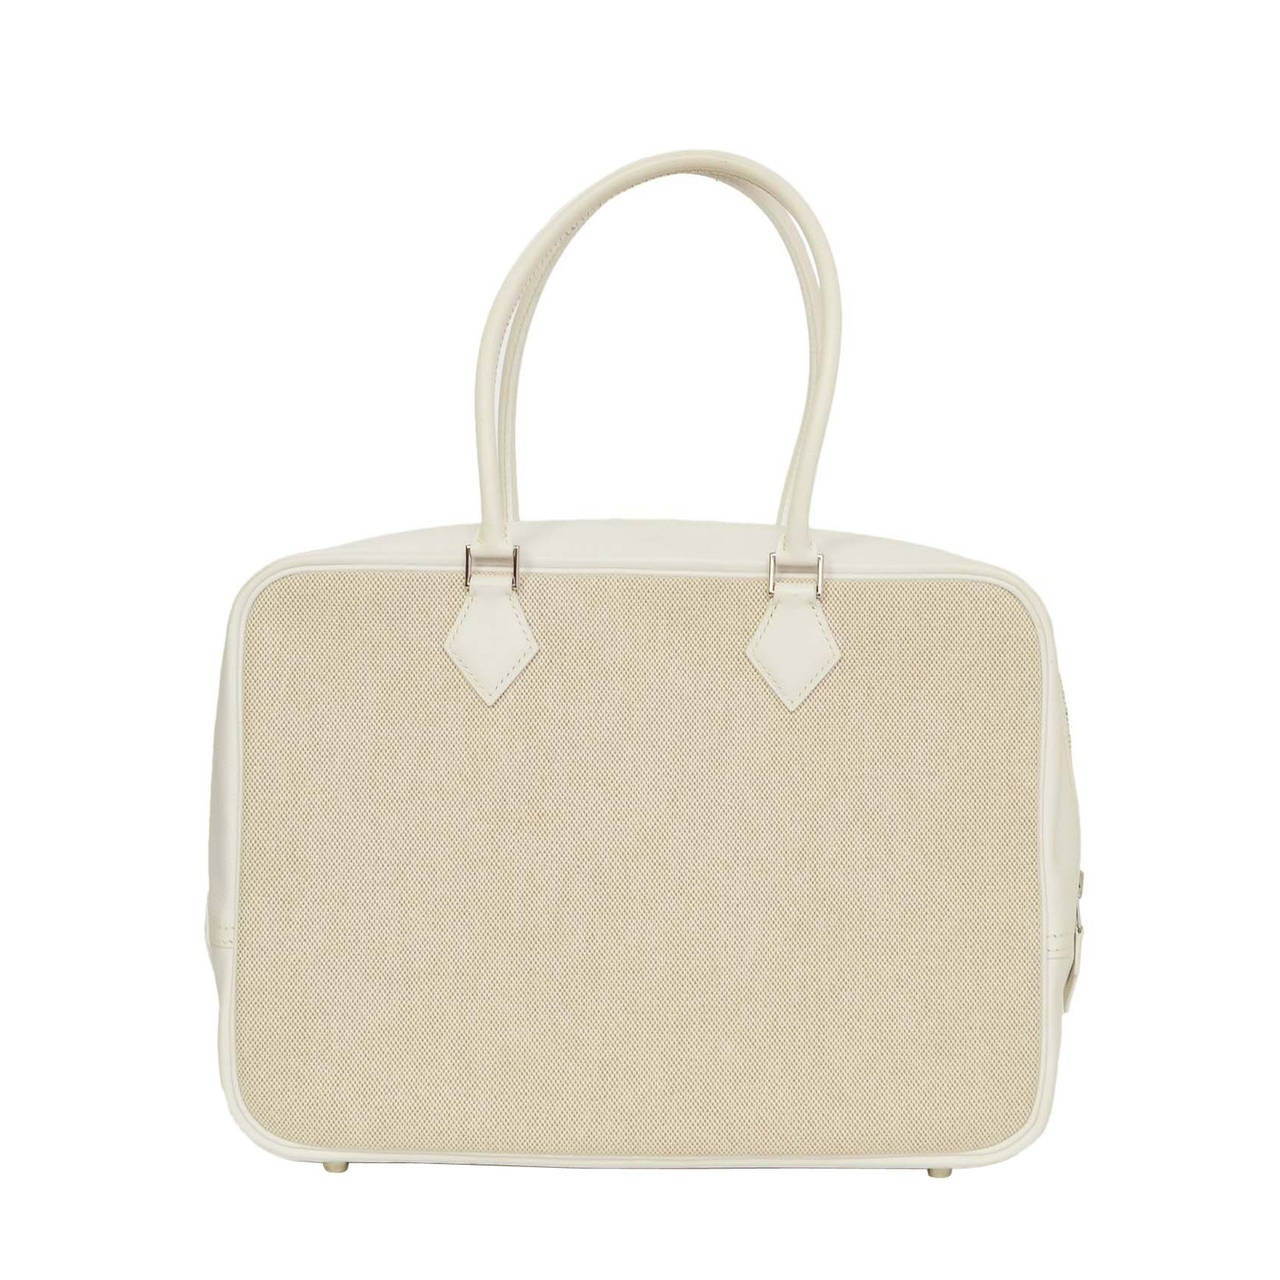 Hermes Beige Canvas & White Leather Toile 32cm Plume Bag